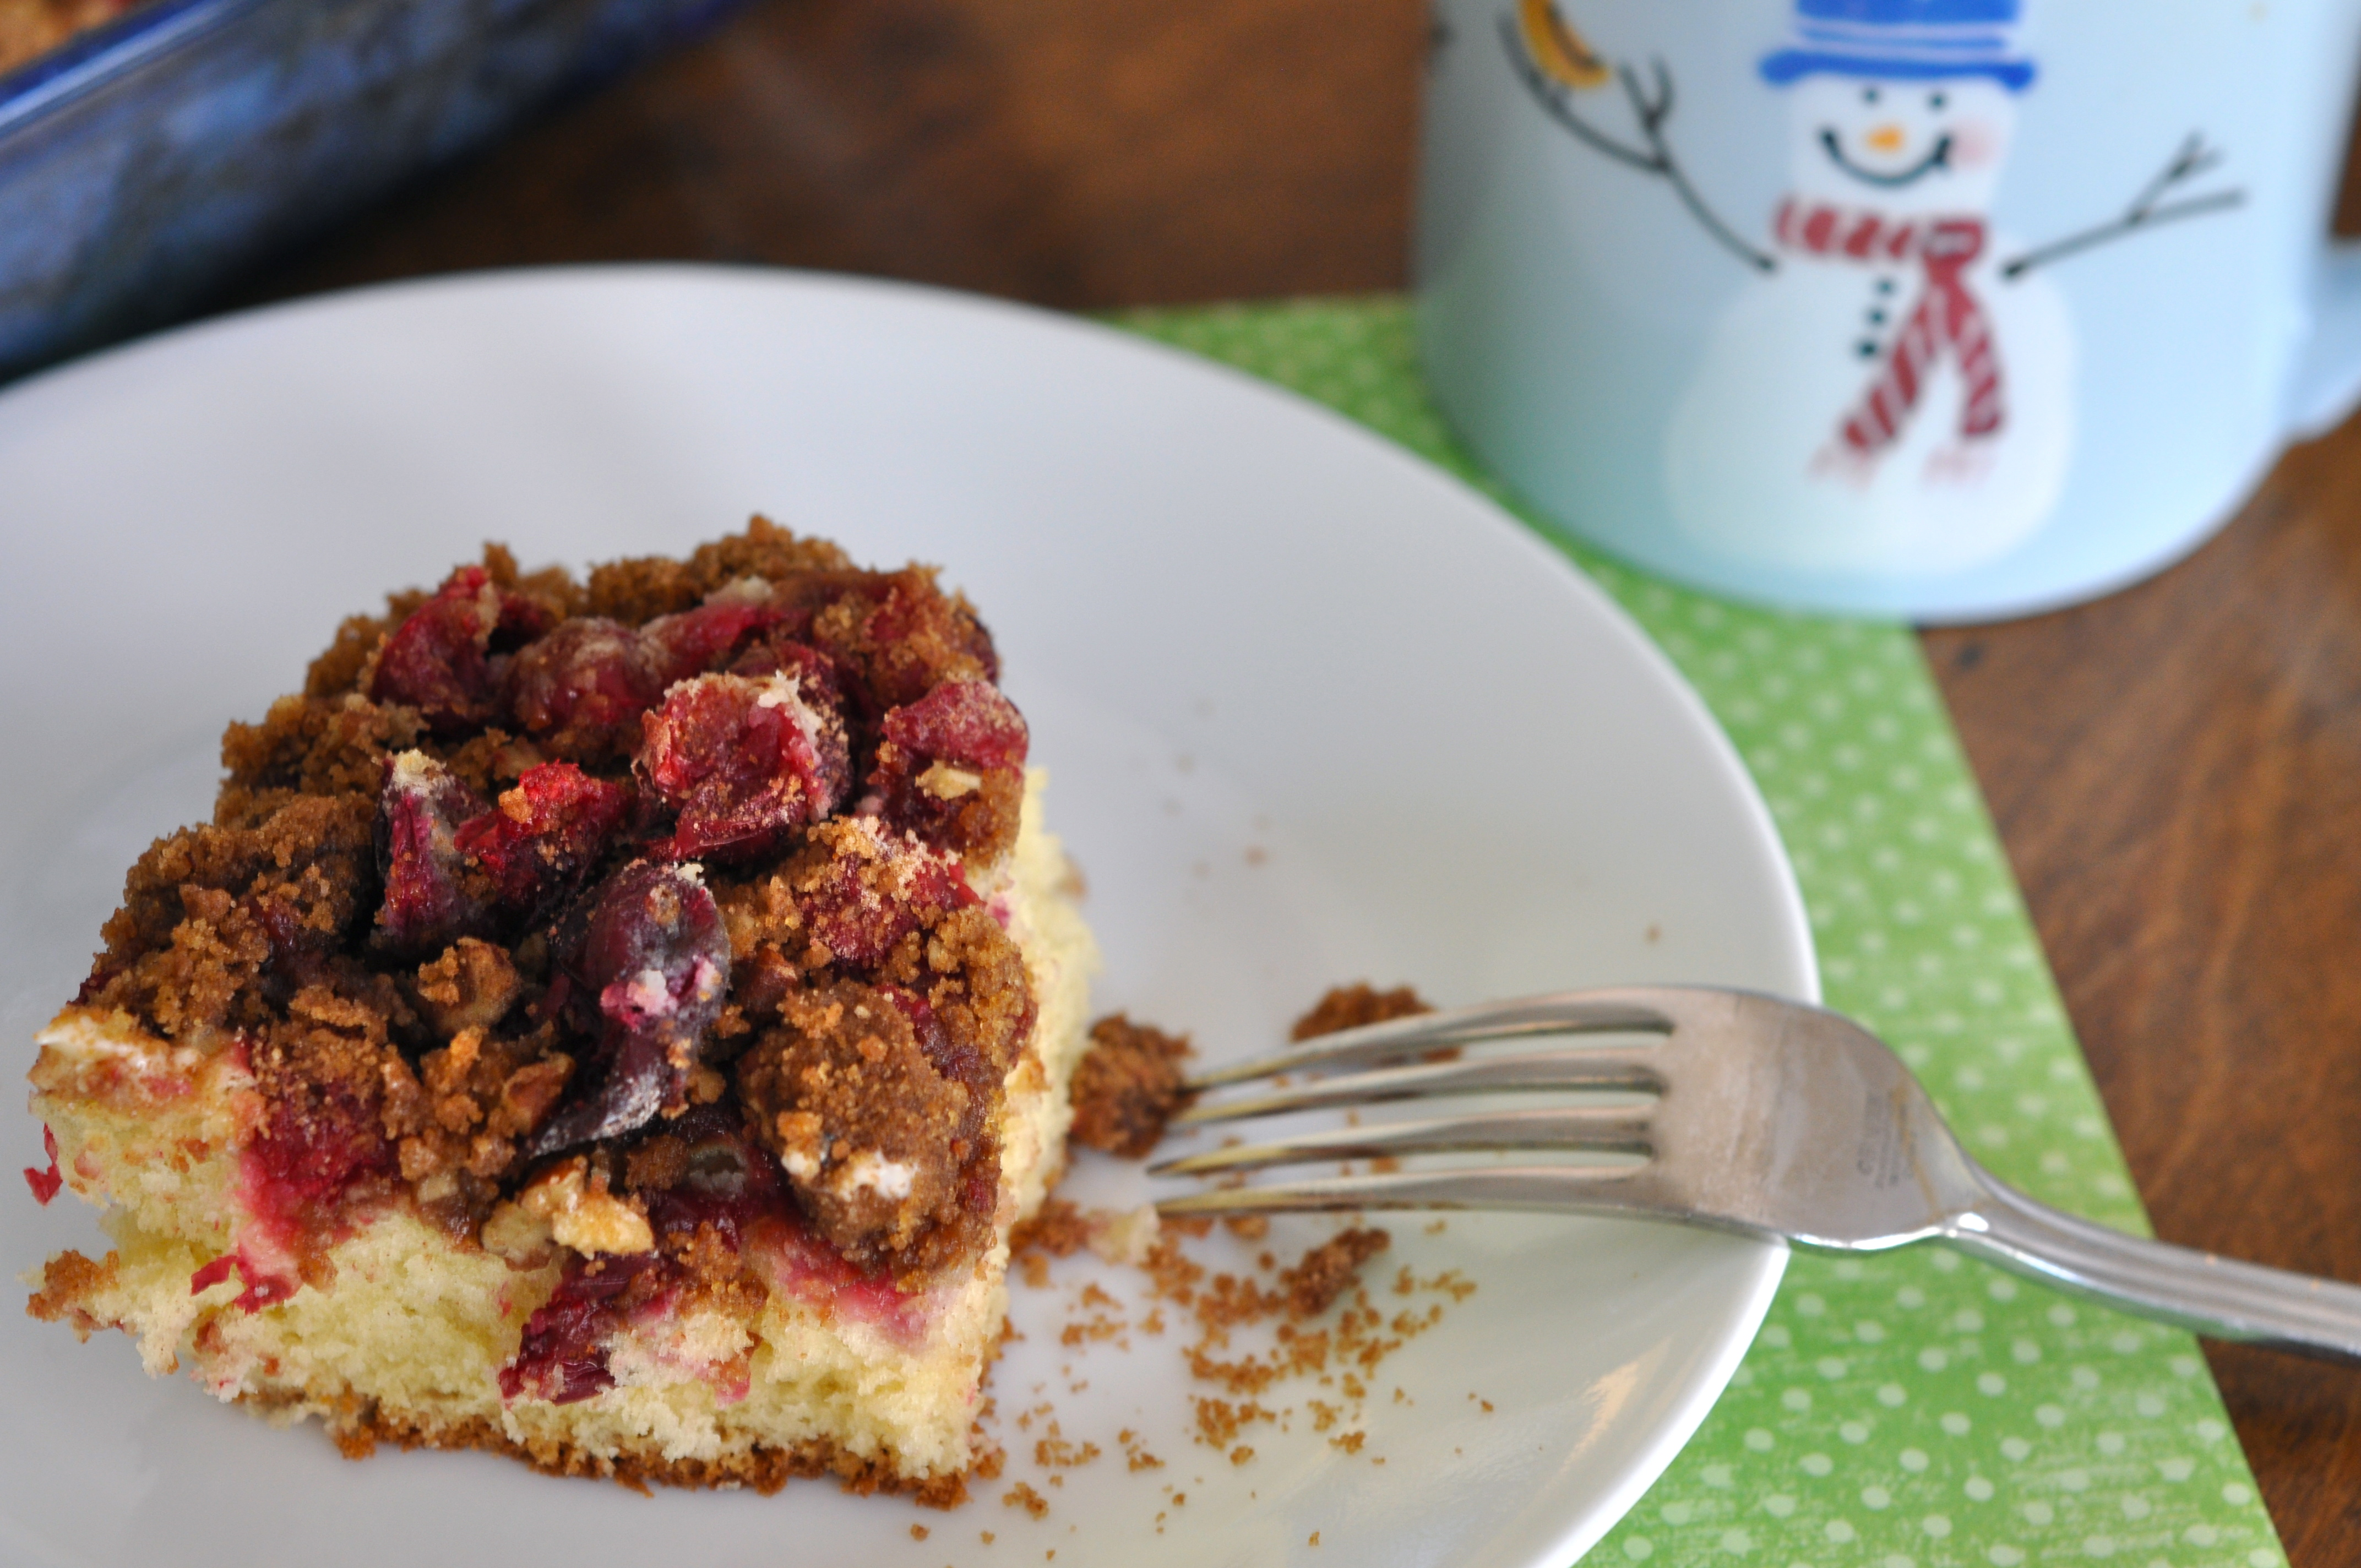 Cranberry Sour Cream Coffee Cake With Streusel Topping